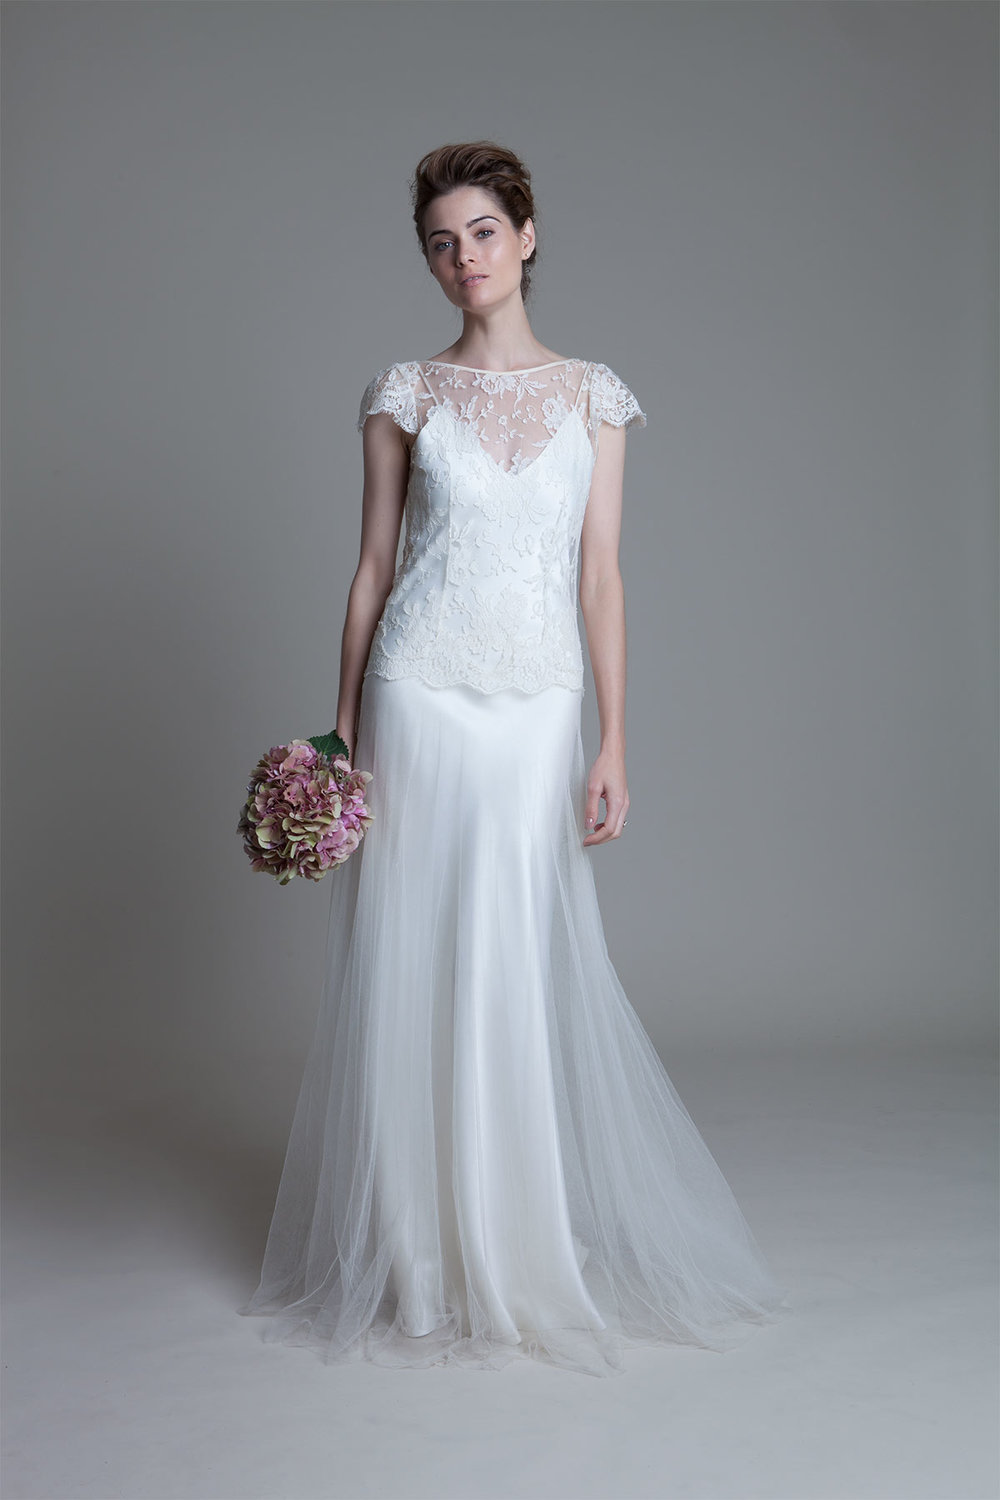 Iris Classic with cap lace sleeves tulle skirt and Iris crepe backed satin slip by Halfpenny London